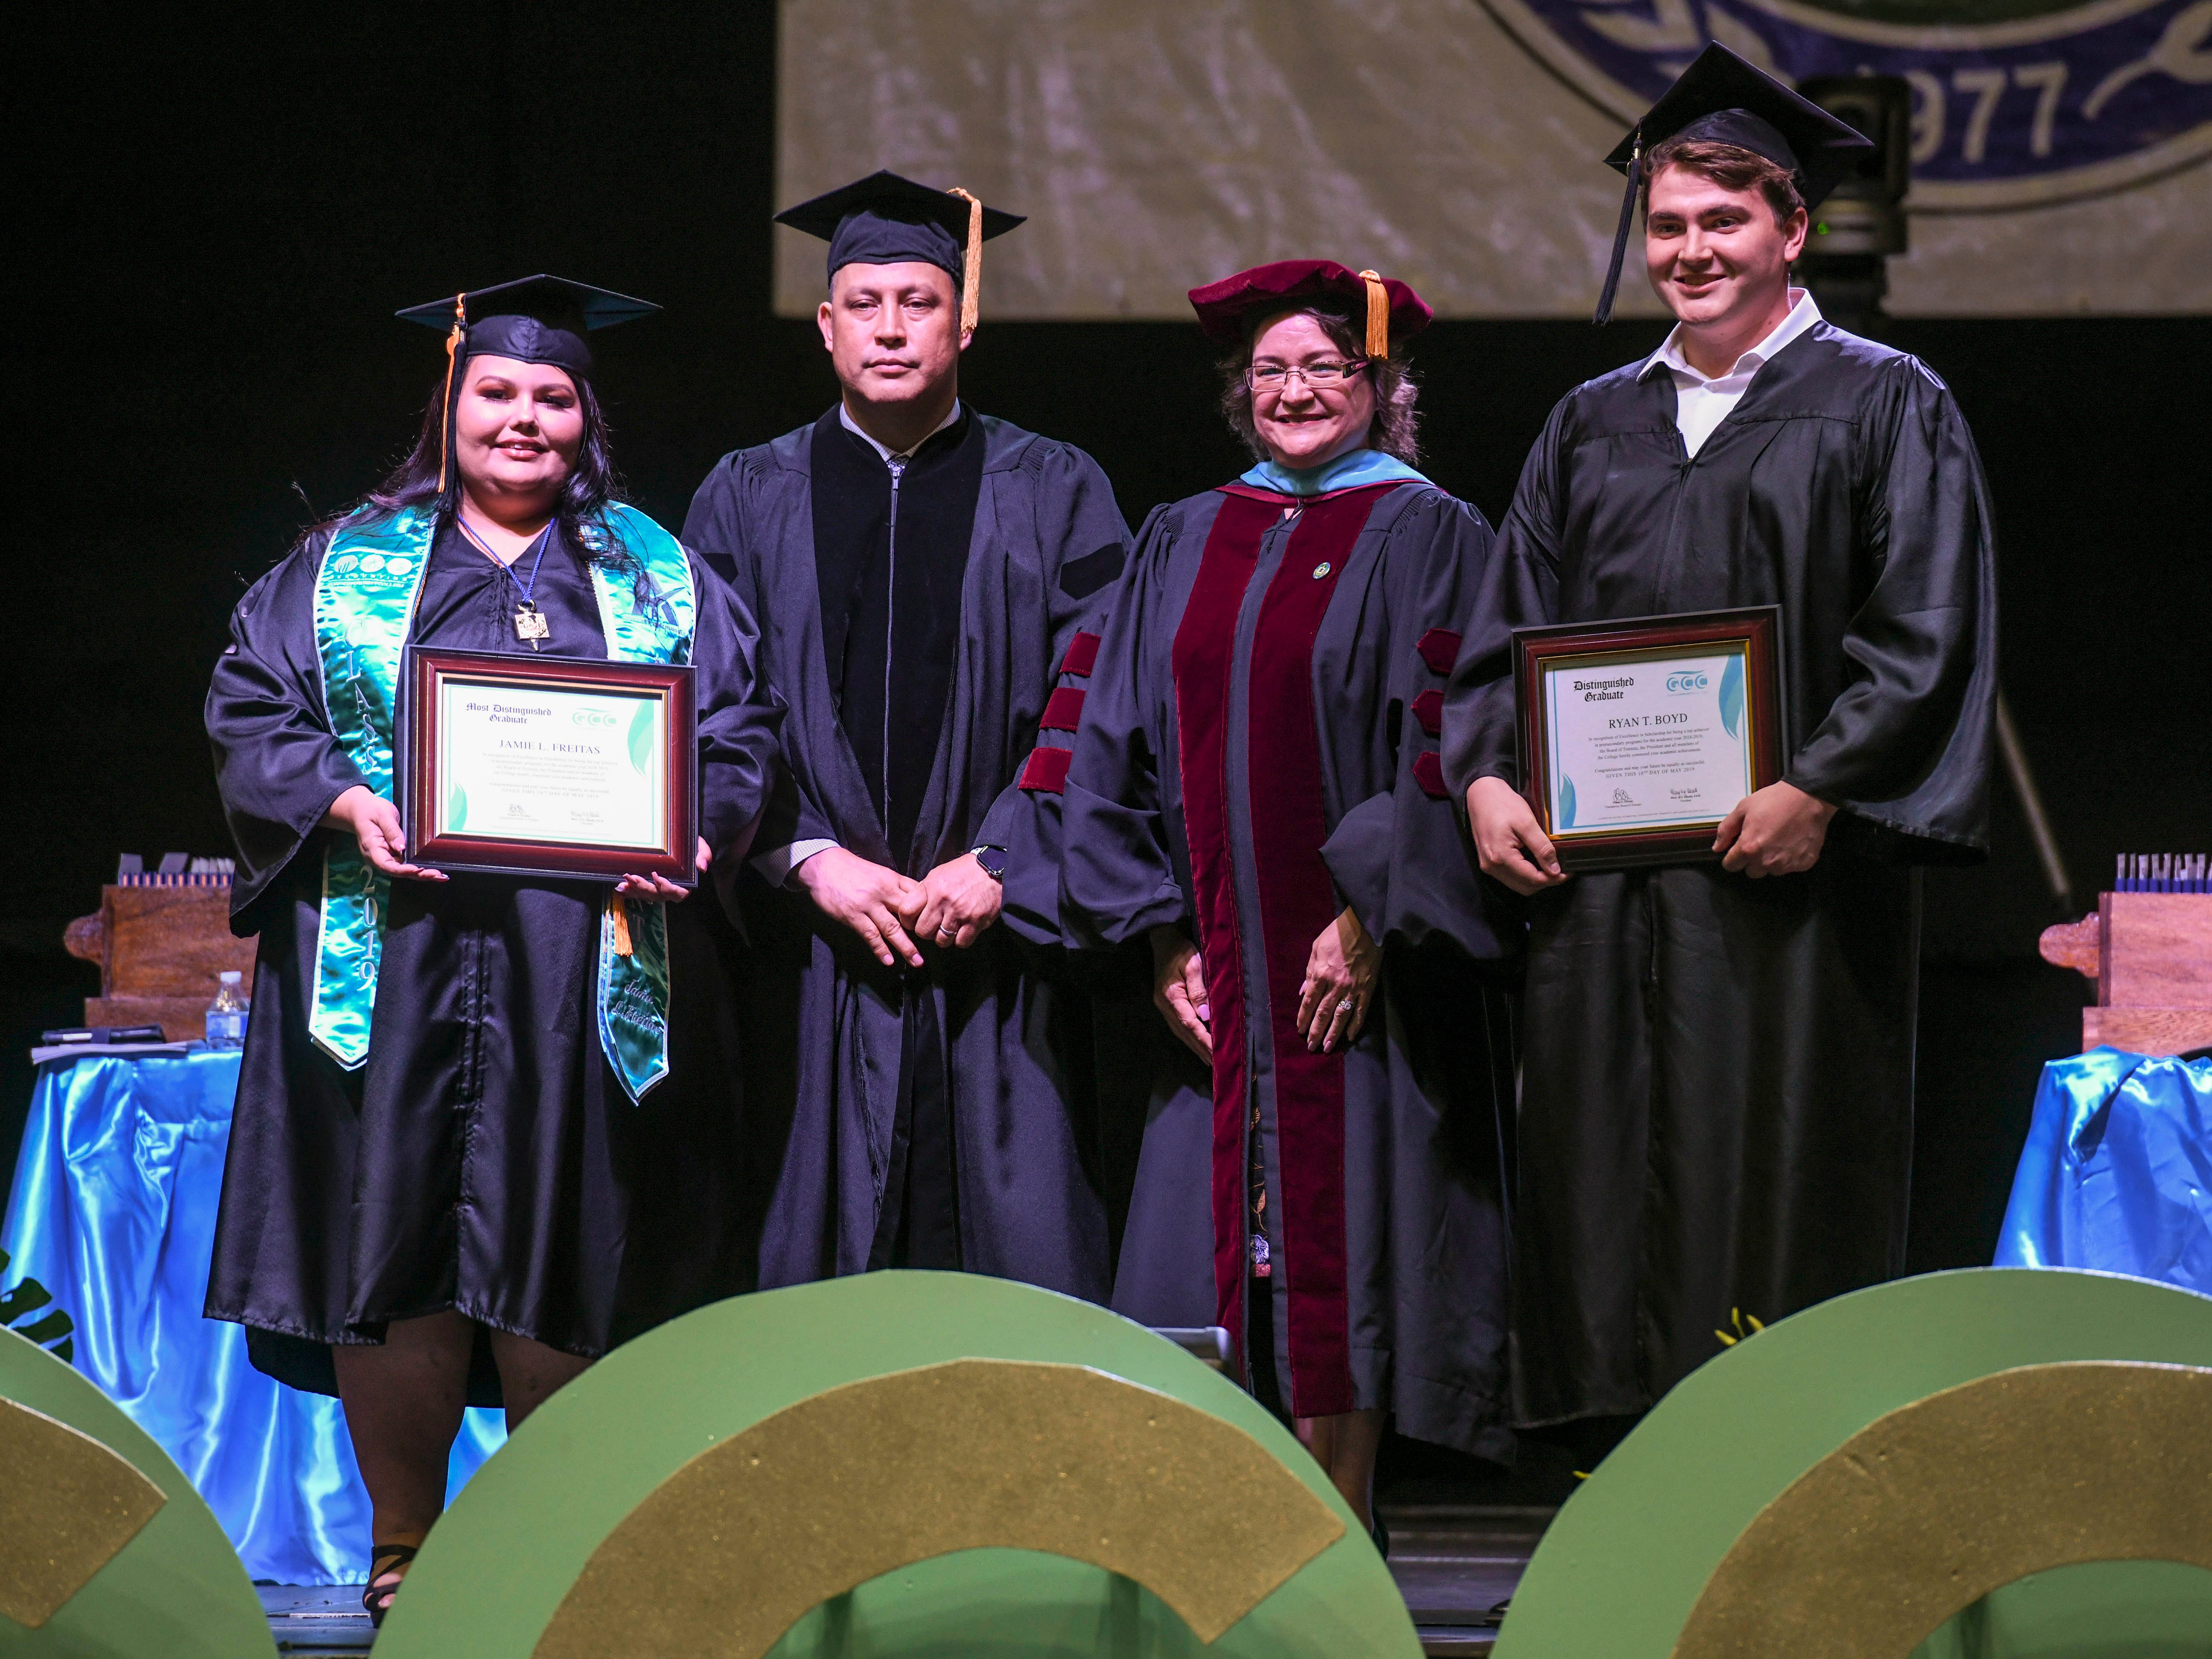 Jaime Lynn Freitas, left, is recognized as the most distinguished graduate and Ryan Boyd as the distinguished graduate during Guam Community College's commencement exercise at the University of Guam in Mangilao on Friday, May 10, 2019. The college conferred a total of 435 degrees, certificates, and/or diplomas to 357 graduate celebrated at the ceremony, attended by hundreds of family members, friends and other well wishers.